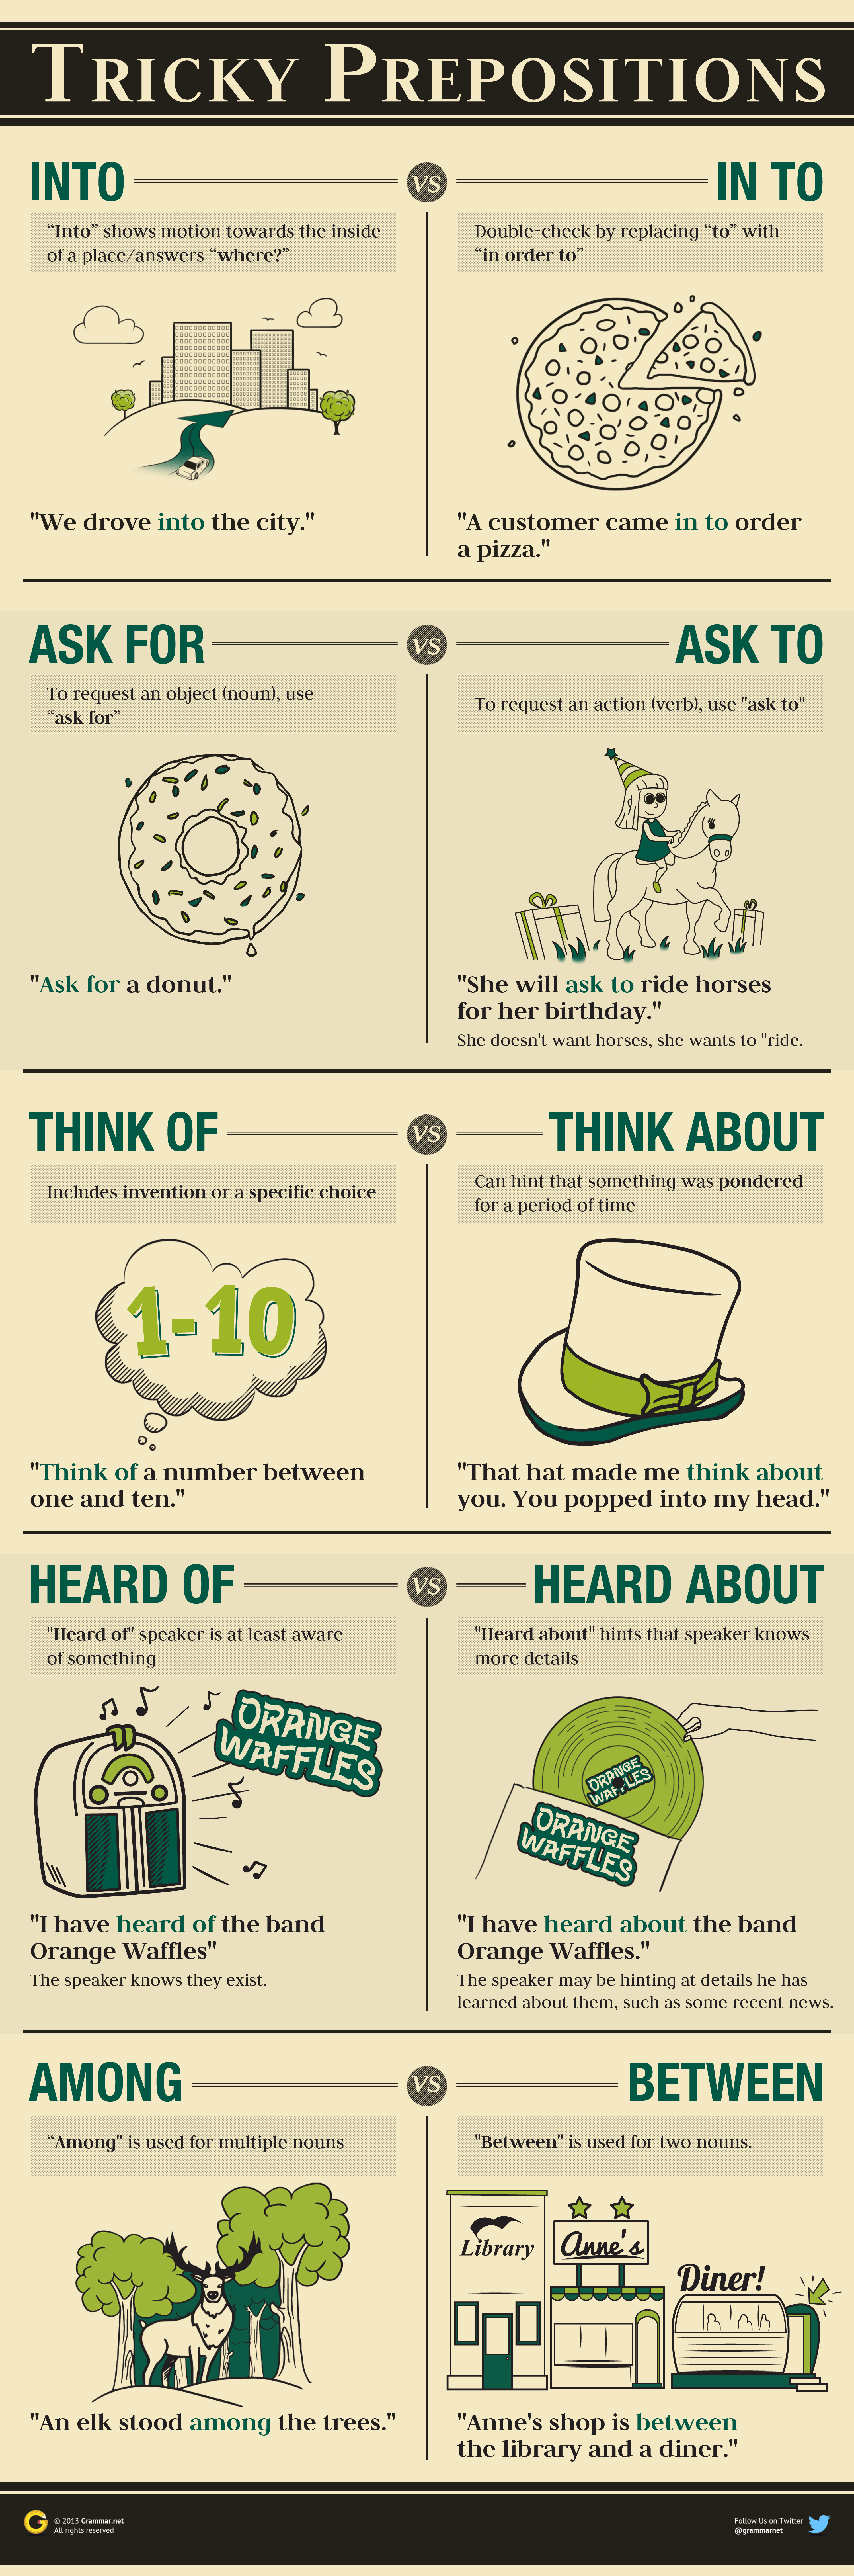 Tricky Prepositions Infographic